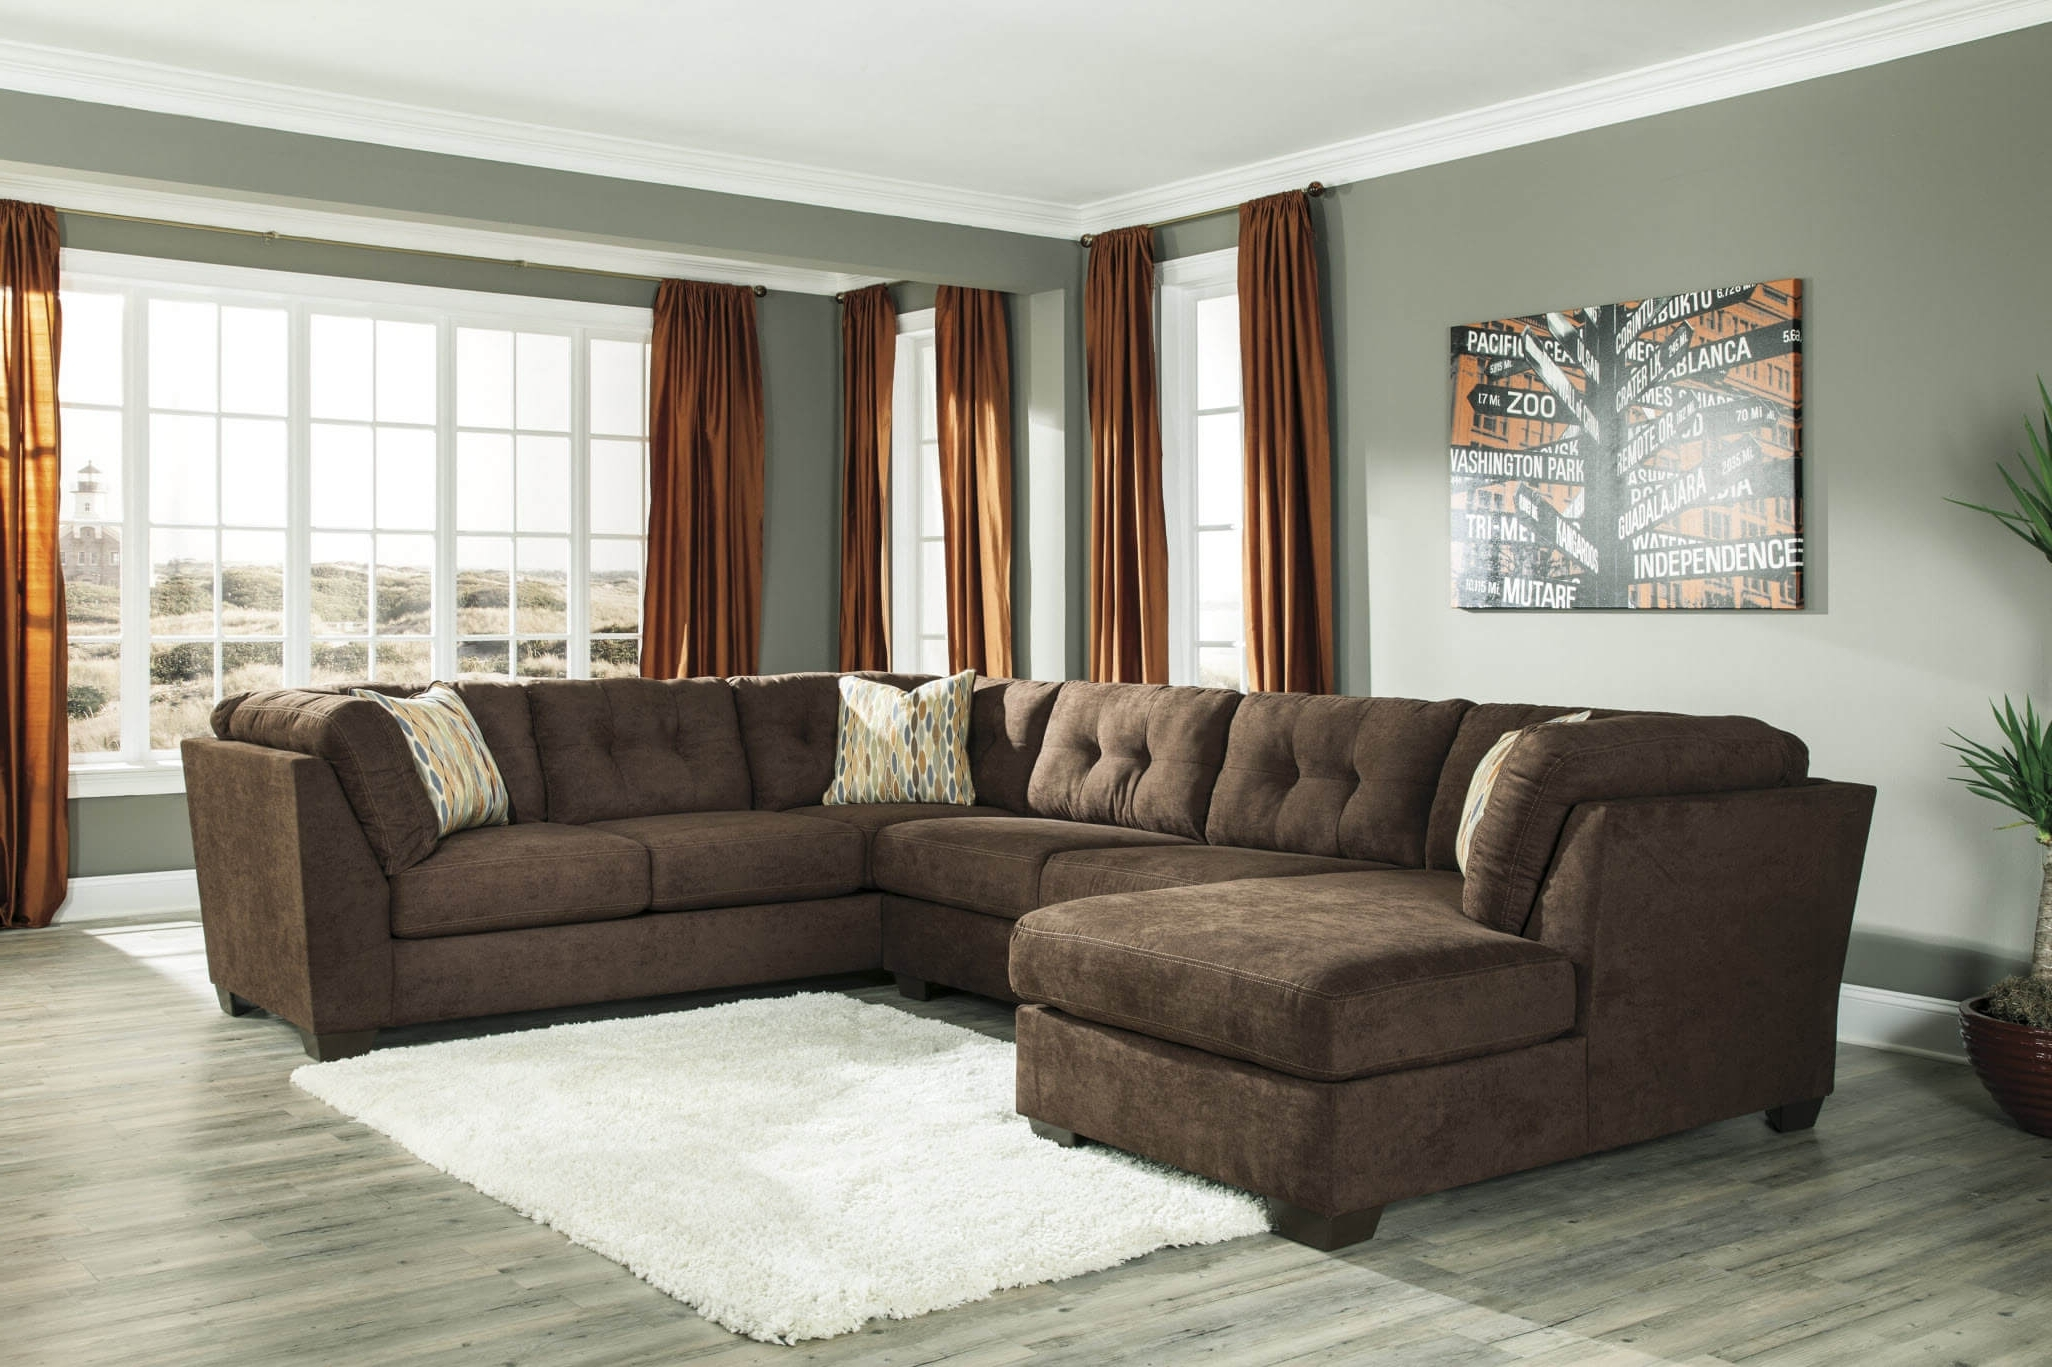 Popular Chocolate Sectional Sofas Throughout Chocolate Sectional Sofa Set With Chaise (View 13 of 20)